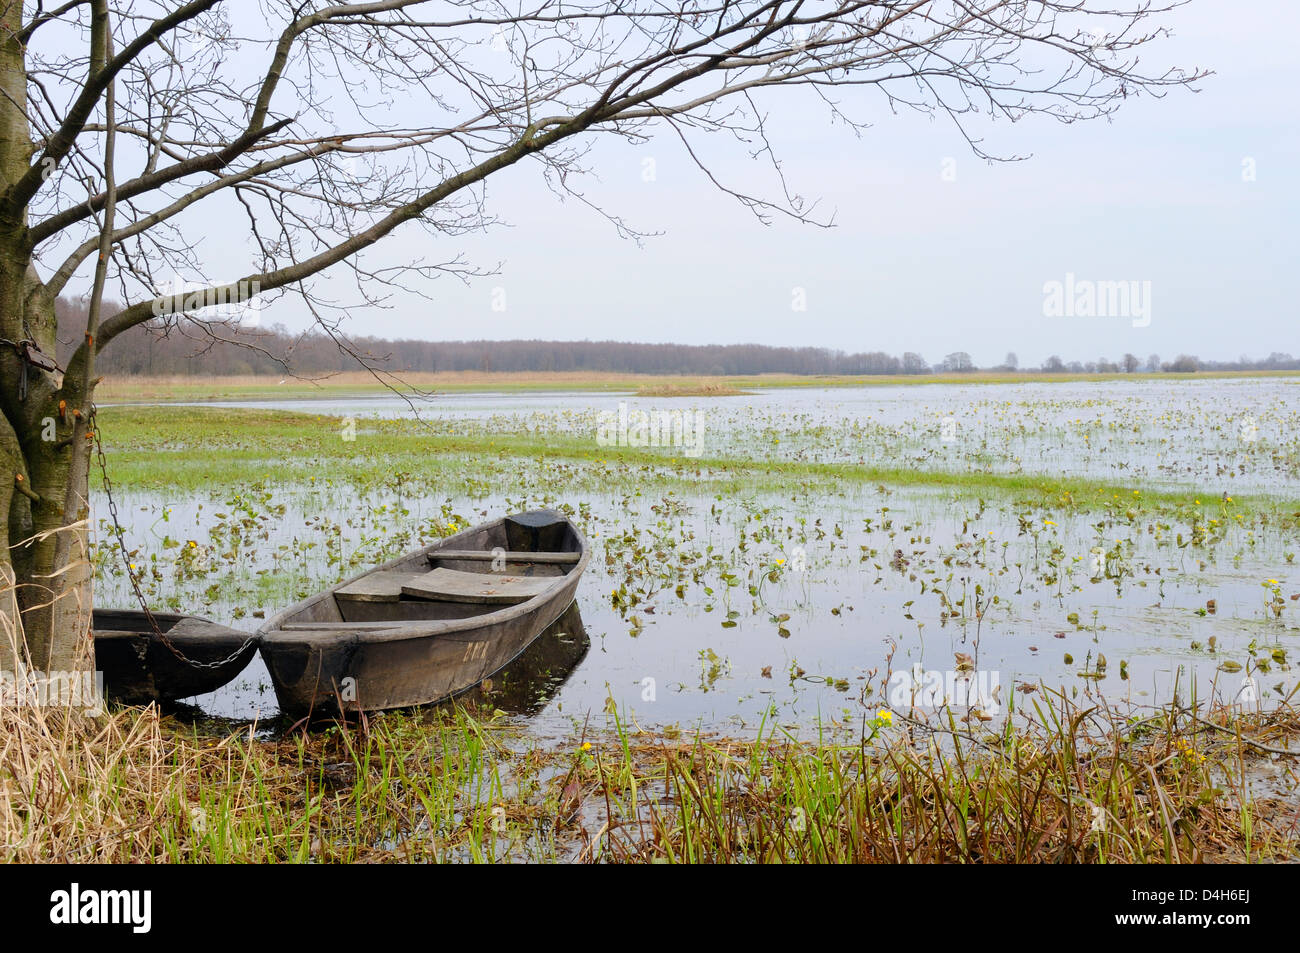 Traditional fishermen's punts chained to a tree beside flooded Narew marshes with flowering marsh marigolds, - Stock Image